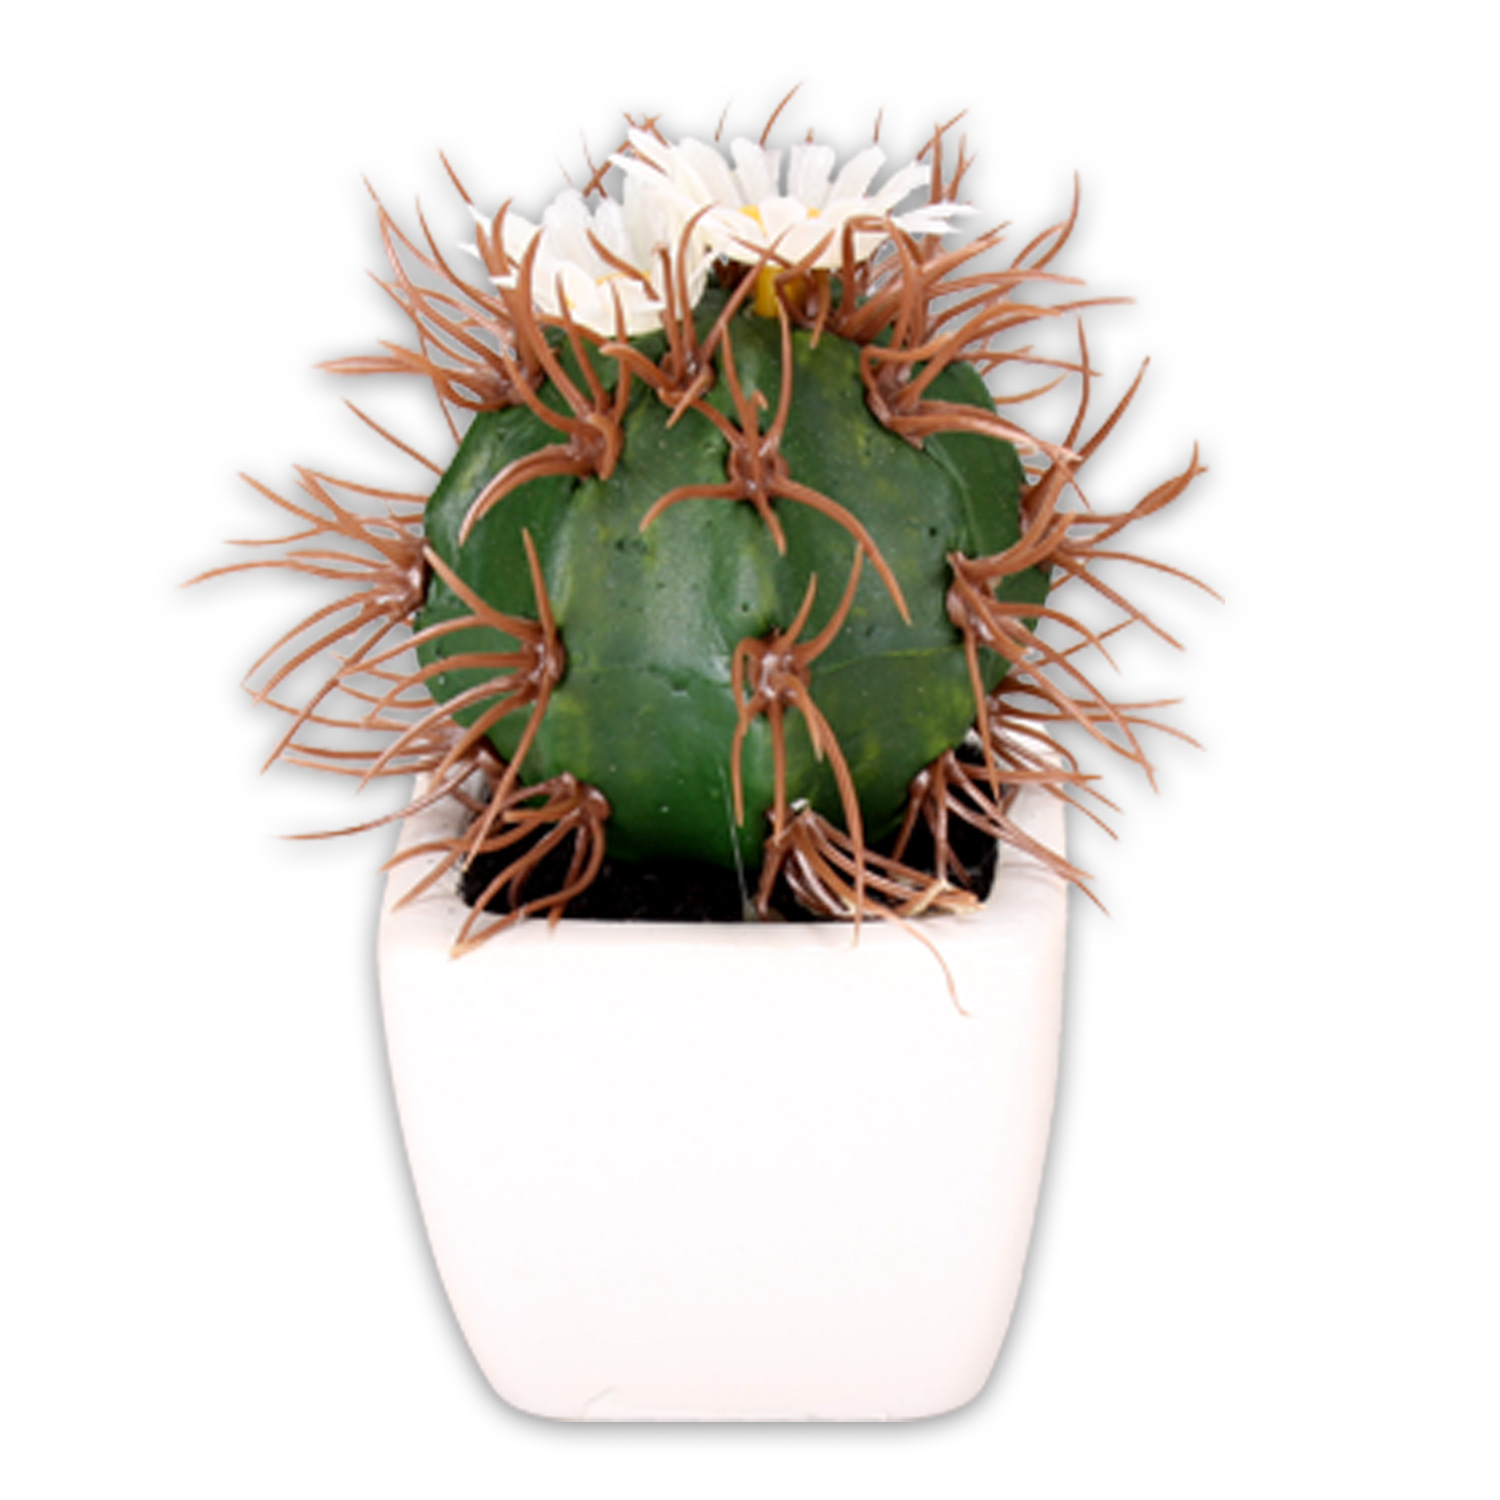 12 artificial cactus in keramik bertopf flowers deco blumen ebay. Black Bedroom Furniture Sets. Home Design Ideas